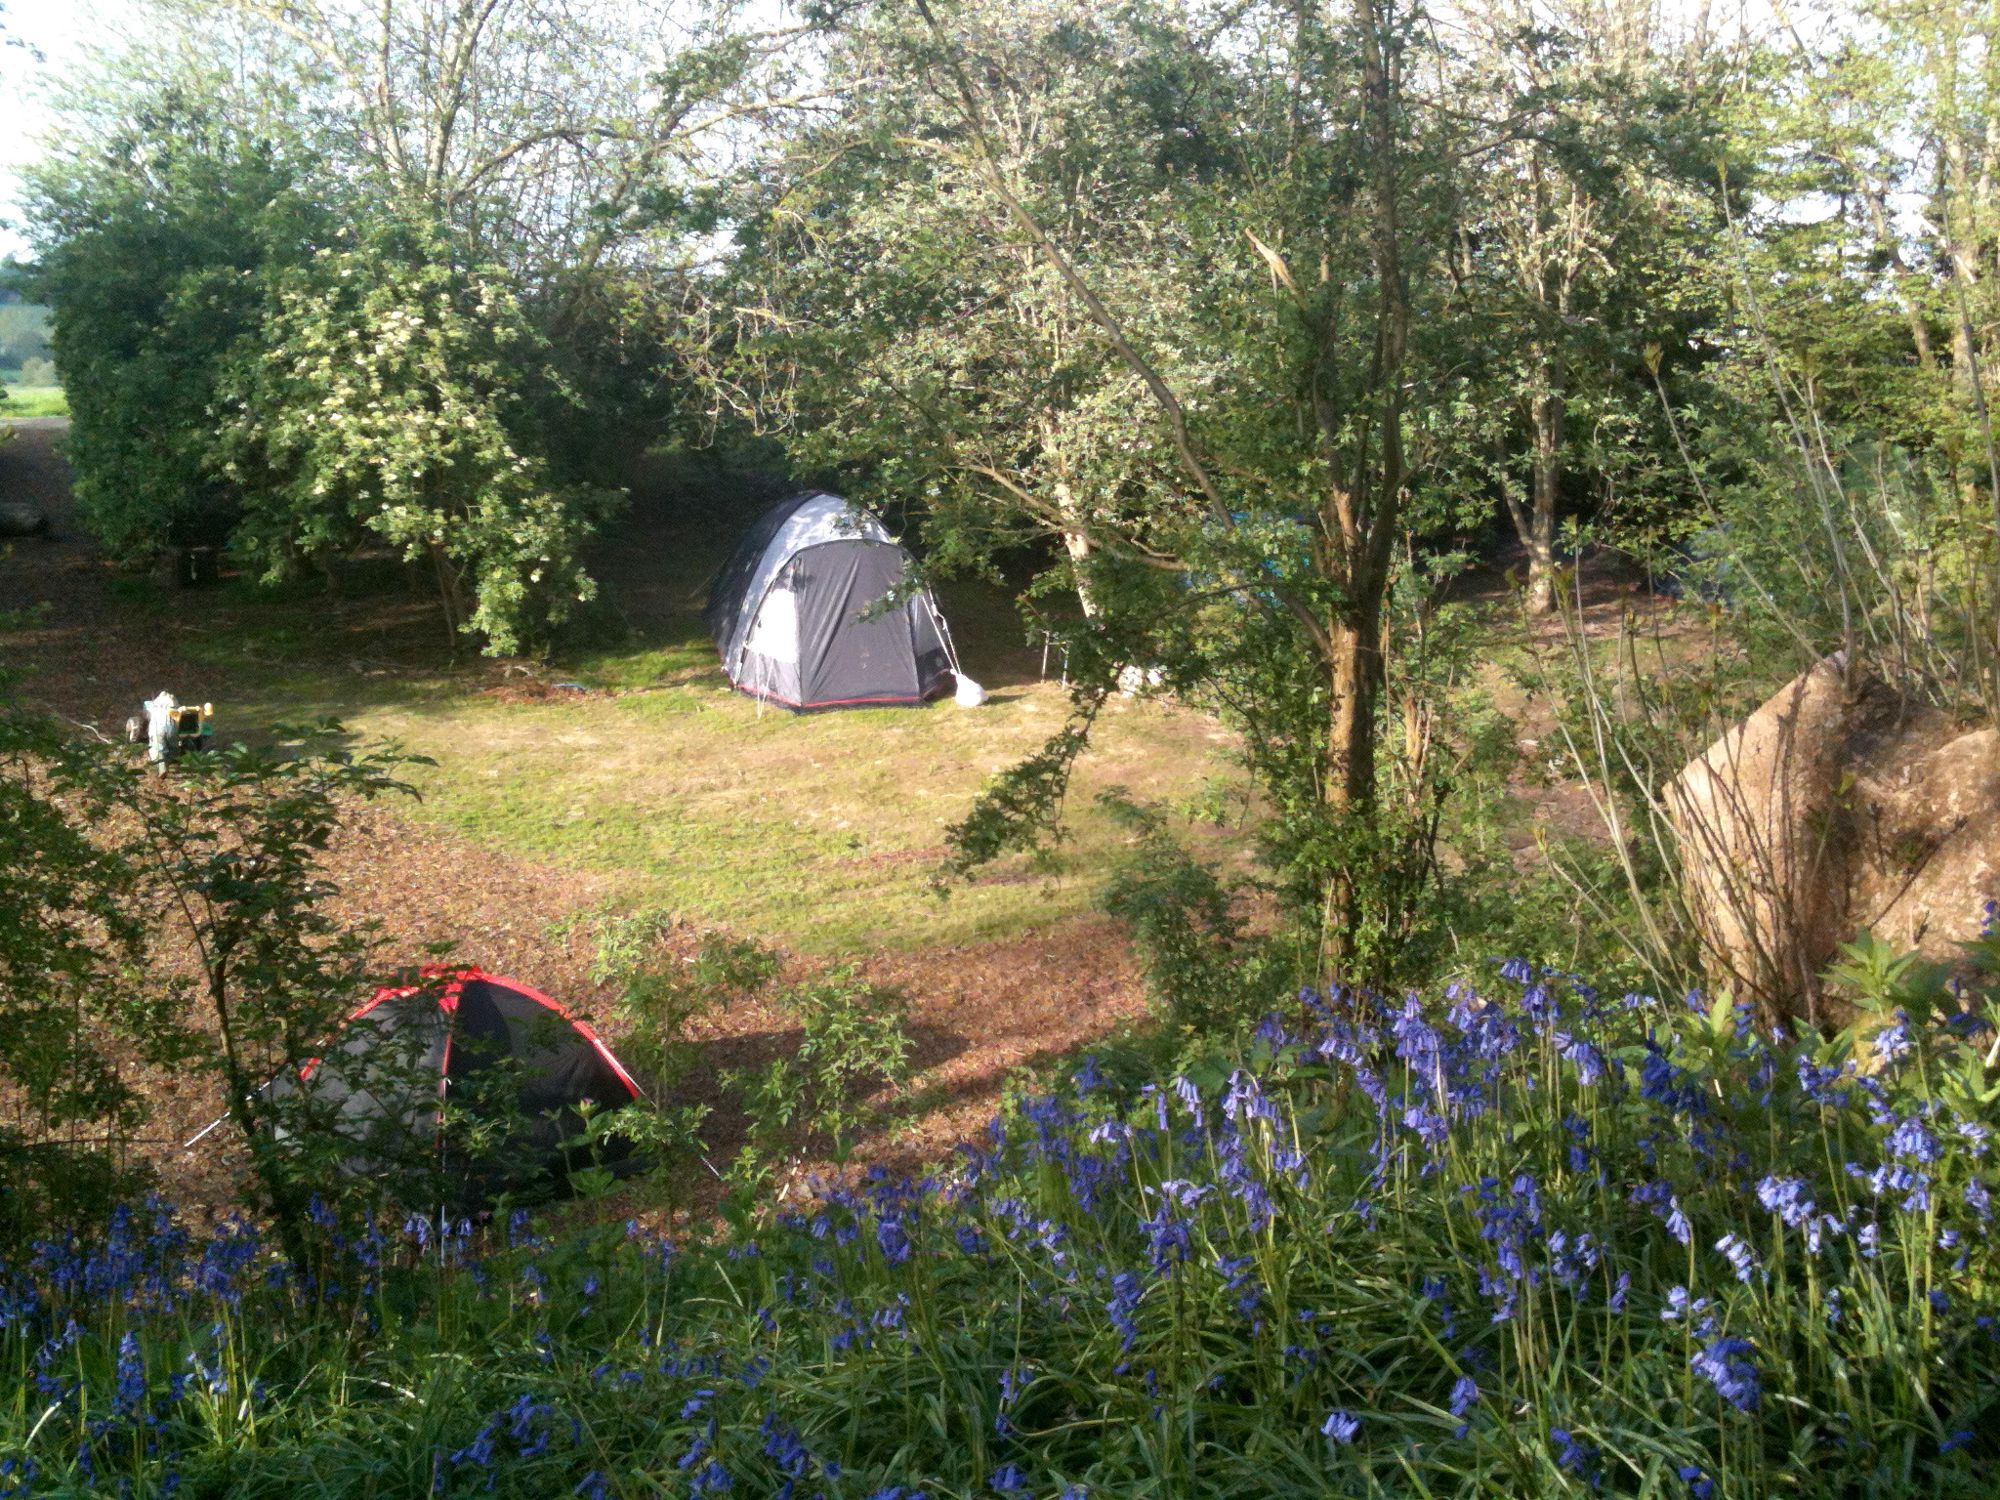 A secret, shady glade near an old castle may sound like the stuff of fairy tales, but Hop Pickers Campsite is no fantasy.